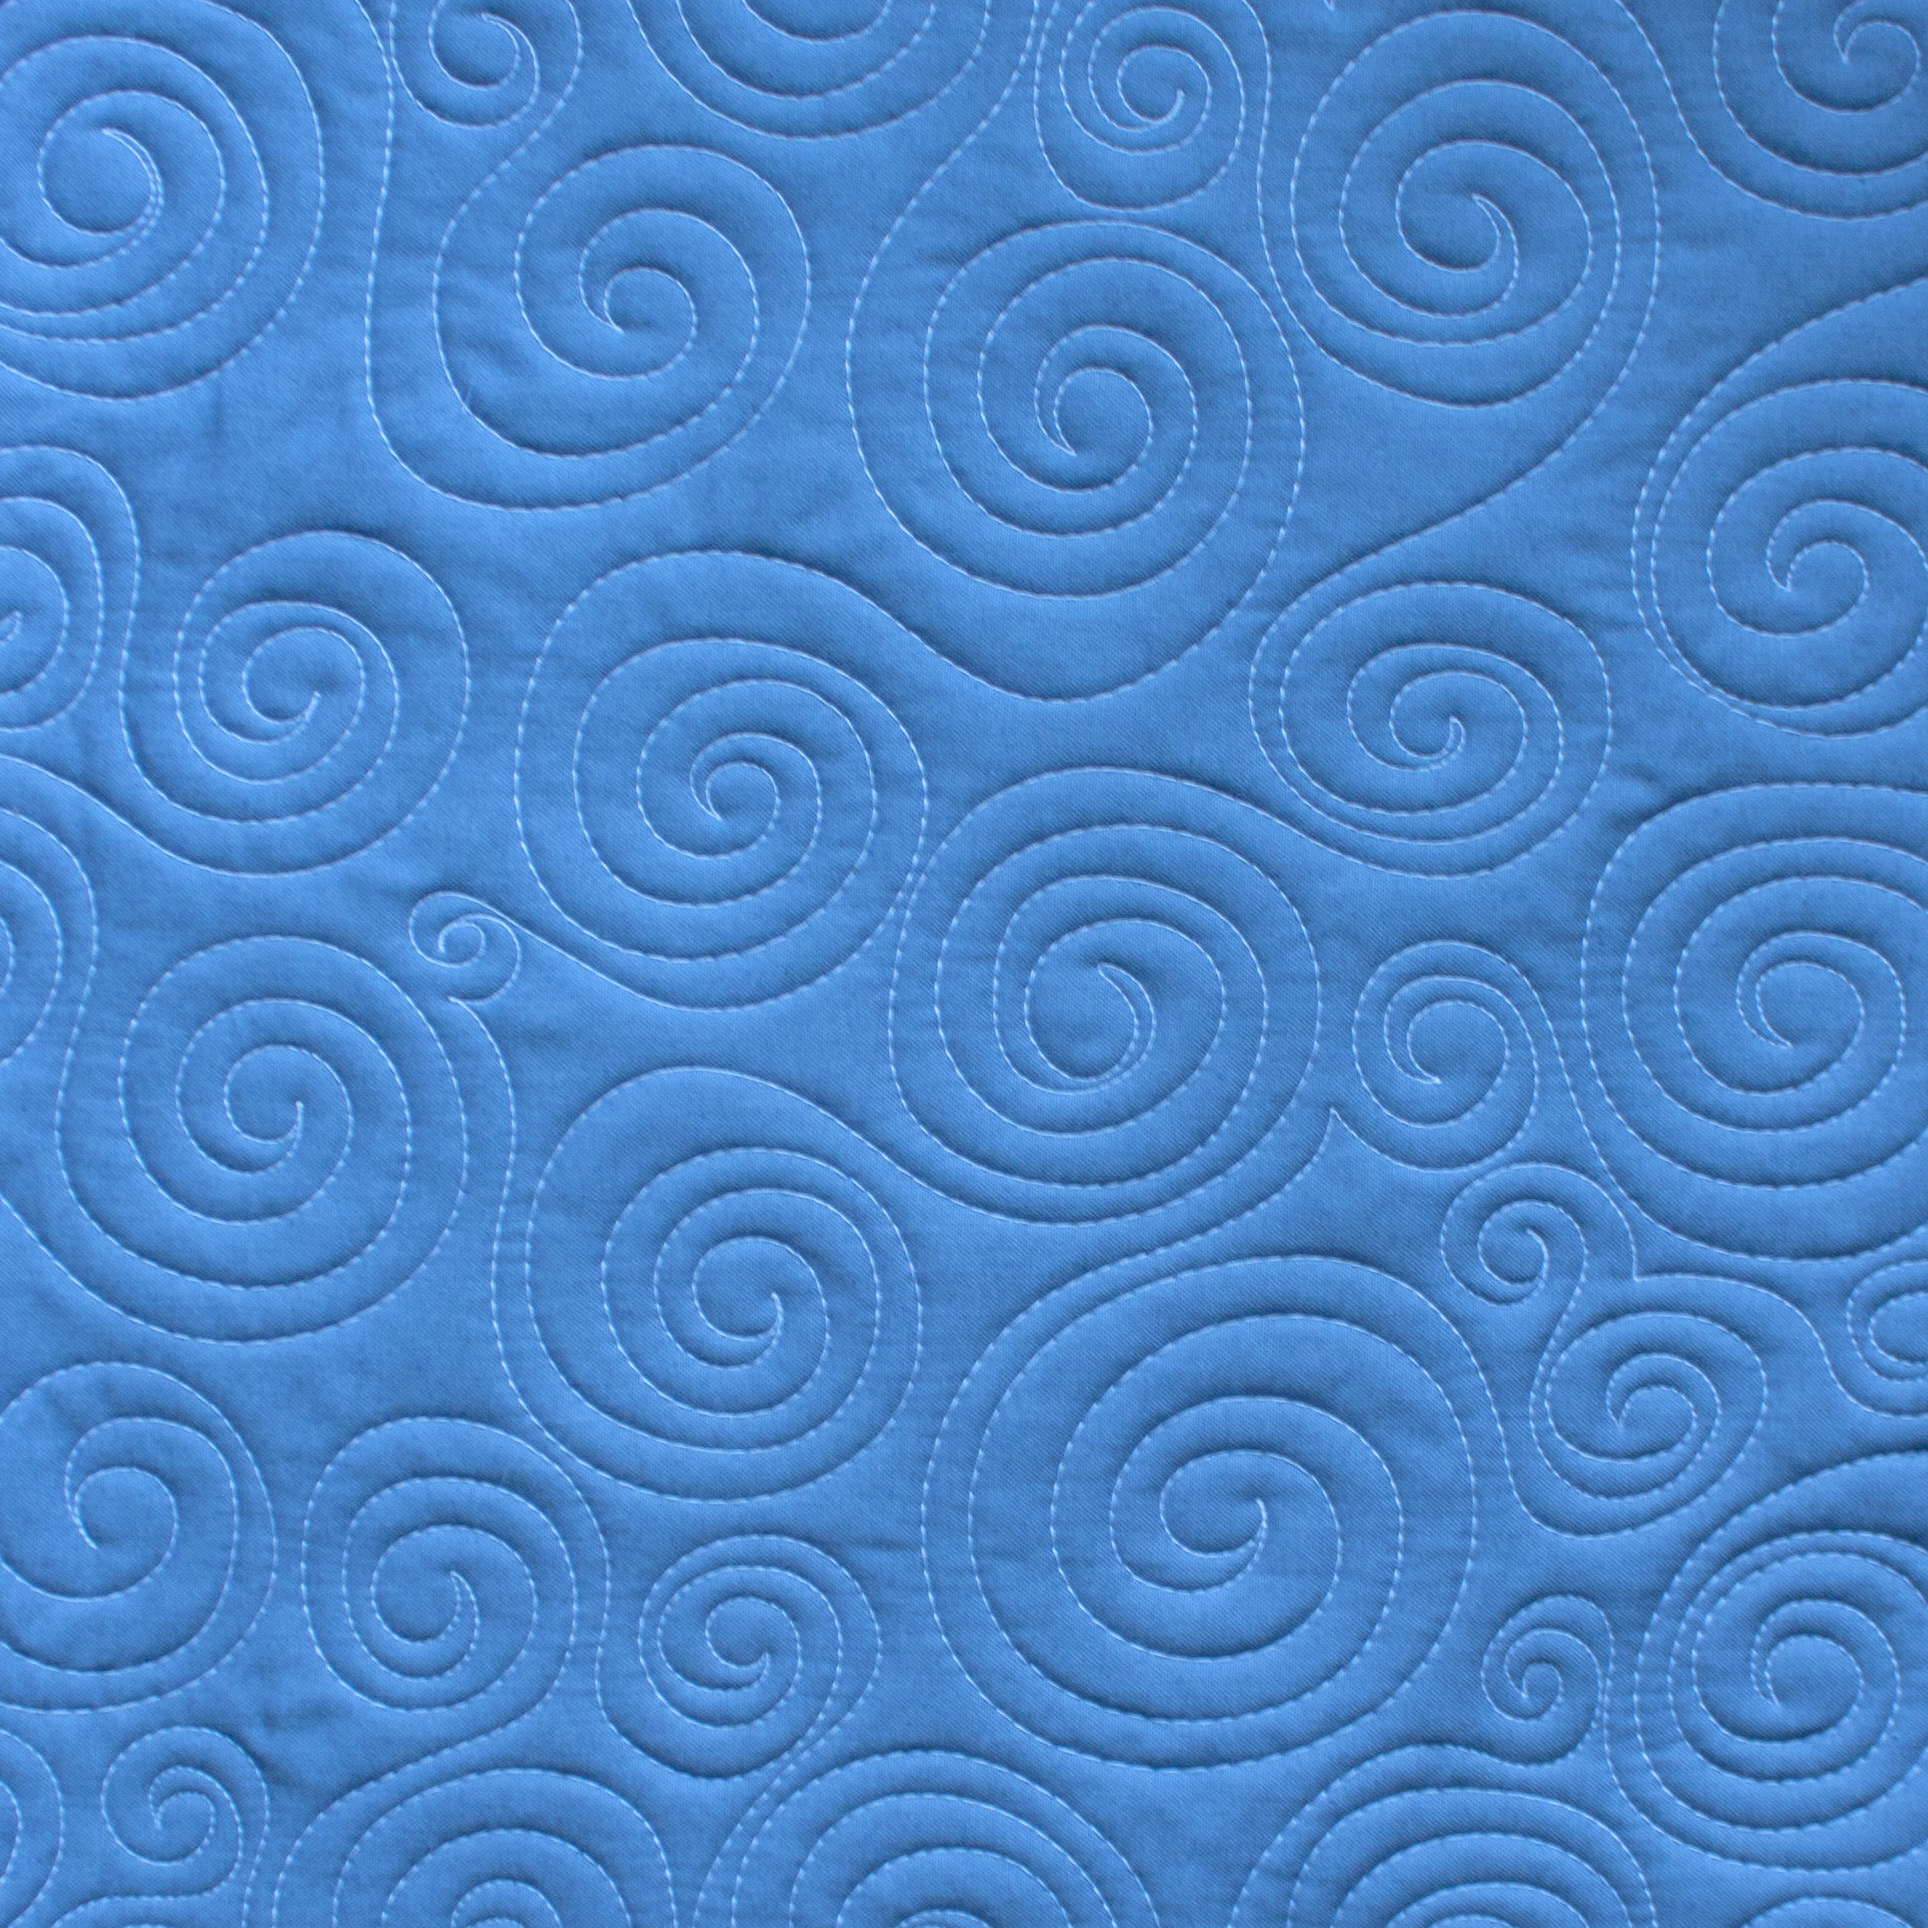 Quilting Services - hand-guided longarm quilting